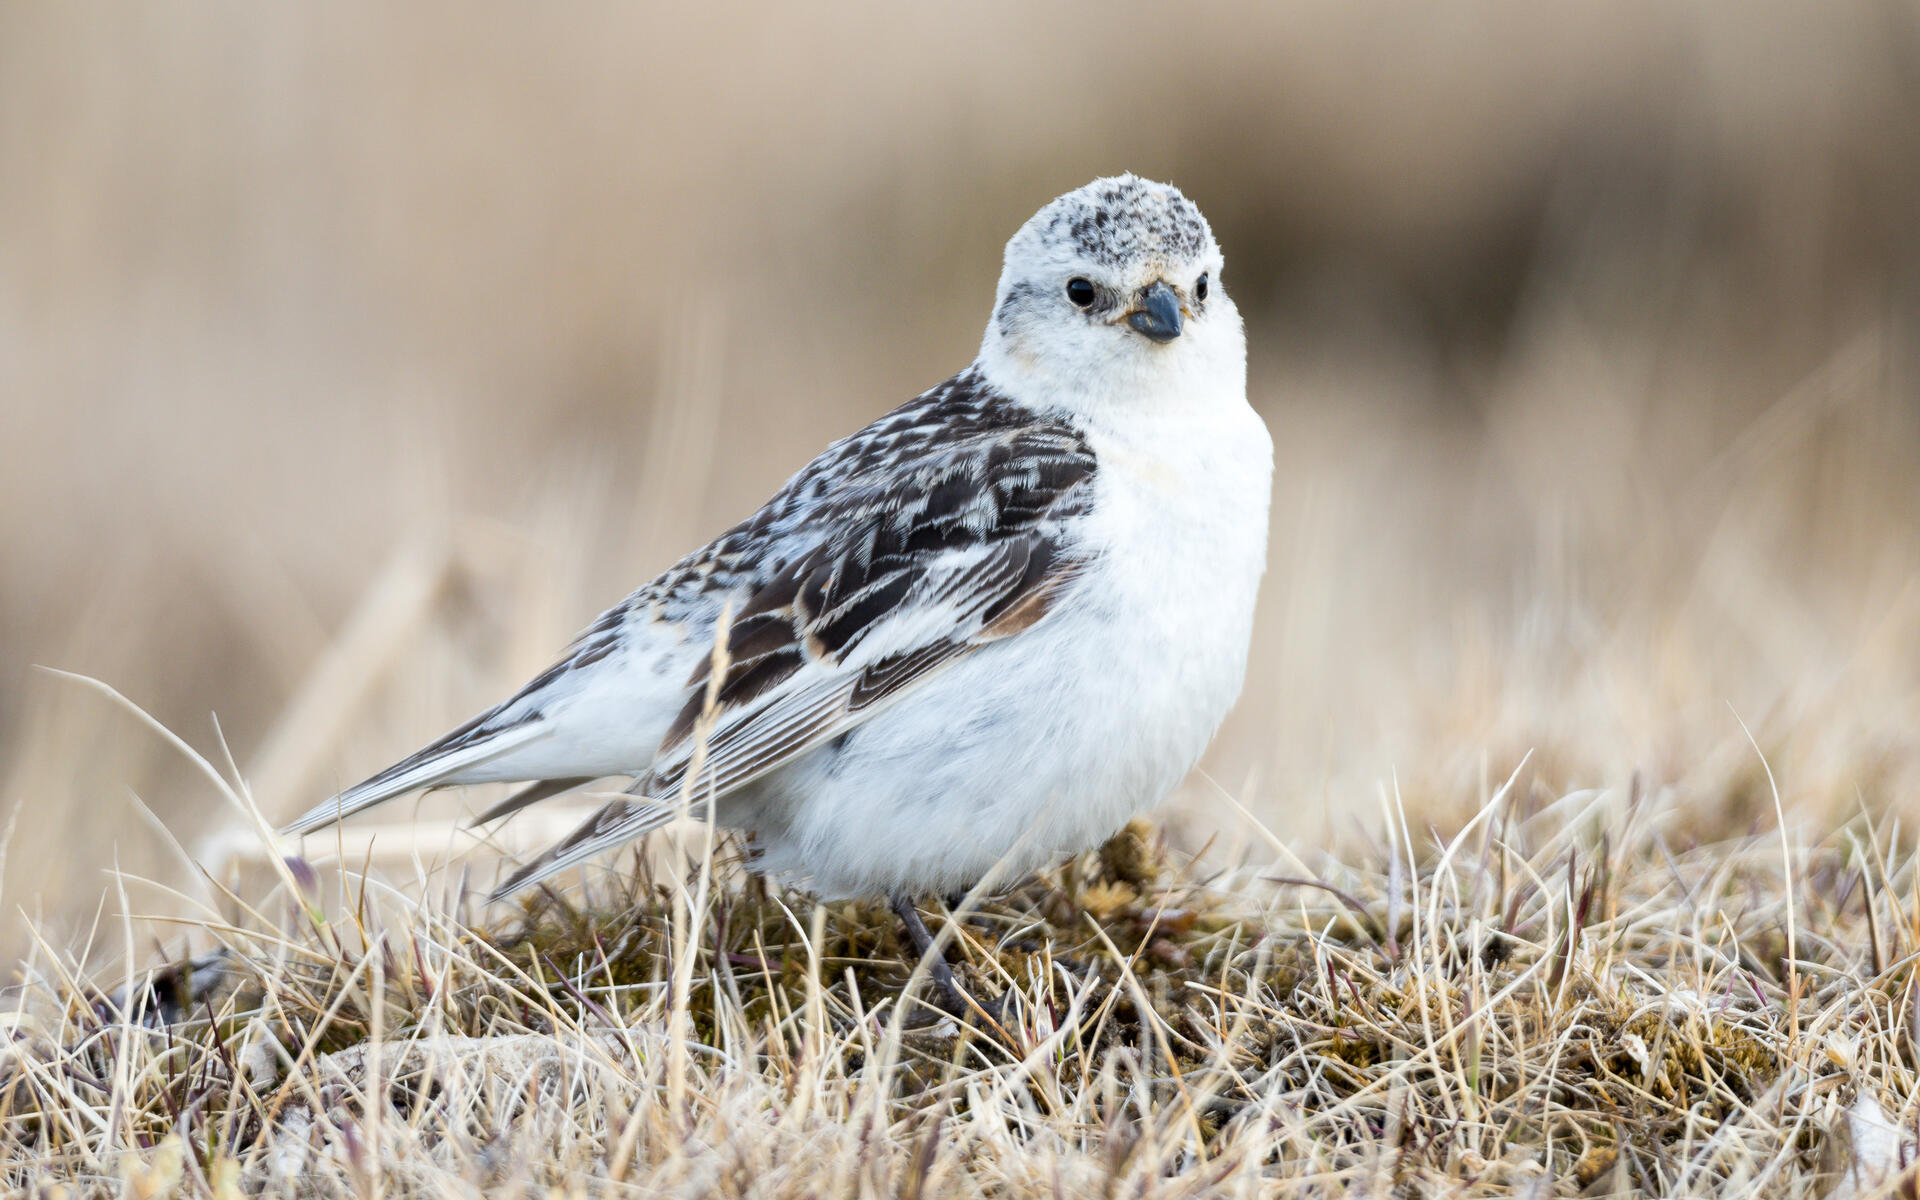 Snow Bunting | Audubon Field Guide